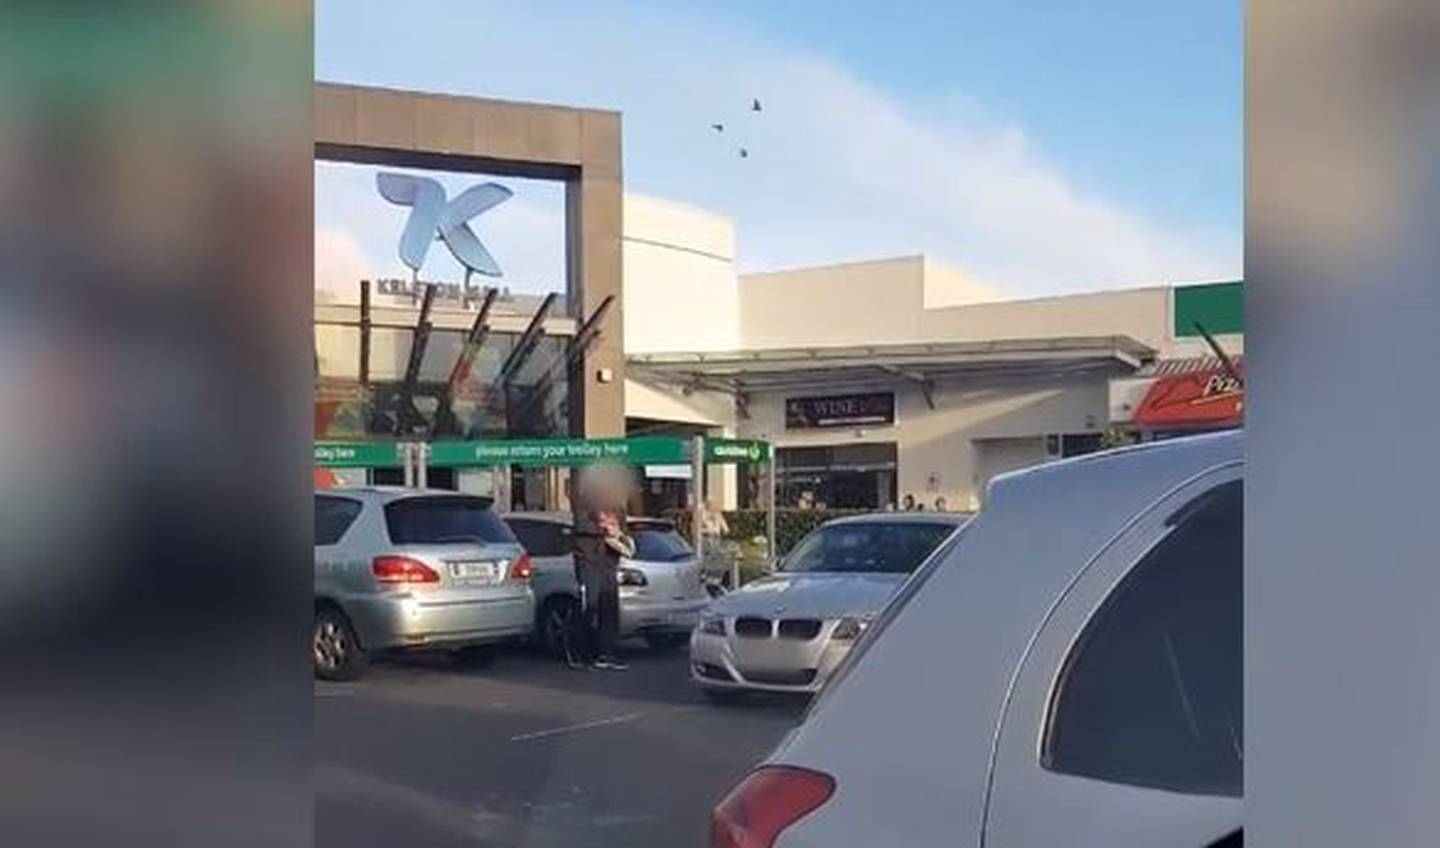 A man is seen throwing eggs at a vehicle outside a shopping centre in Kelston, West Auckland....